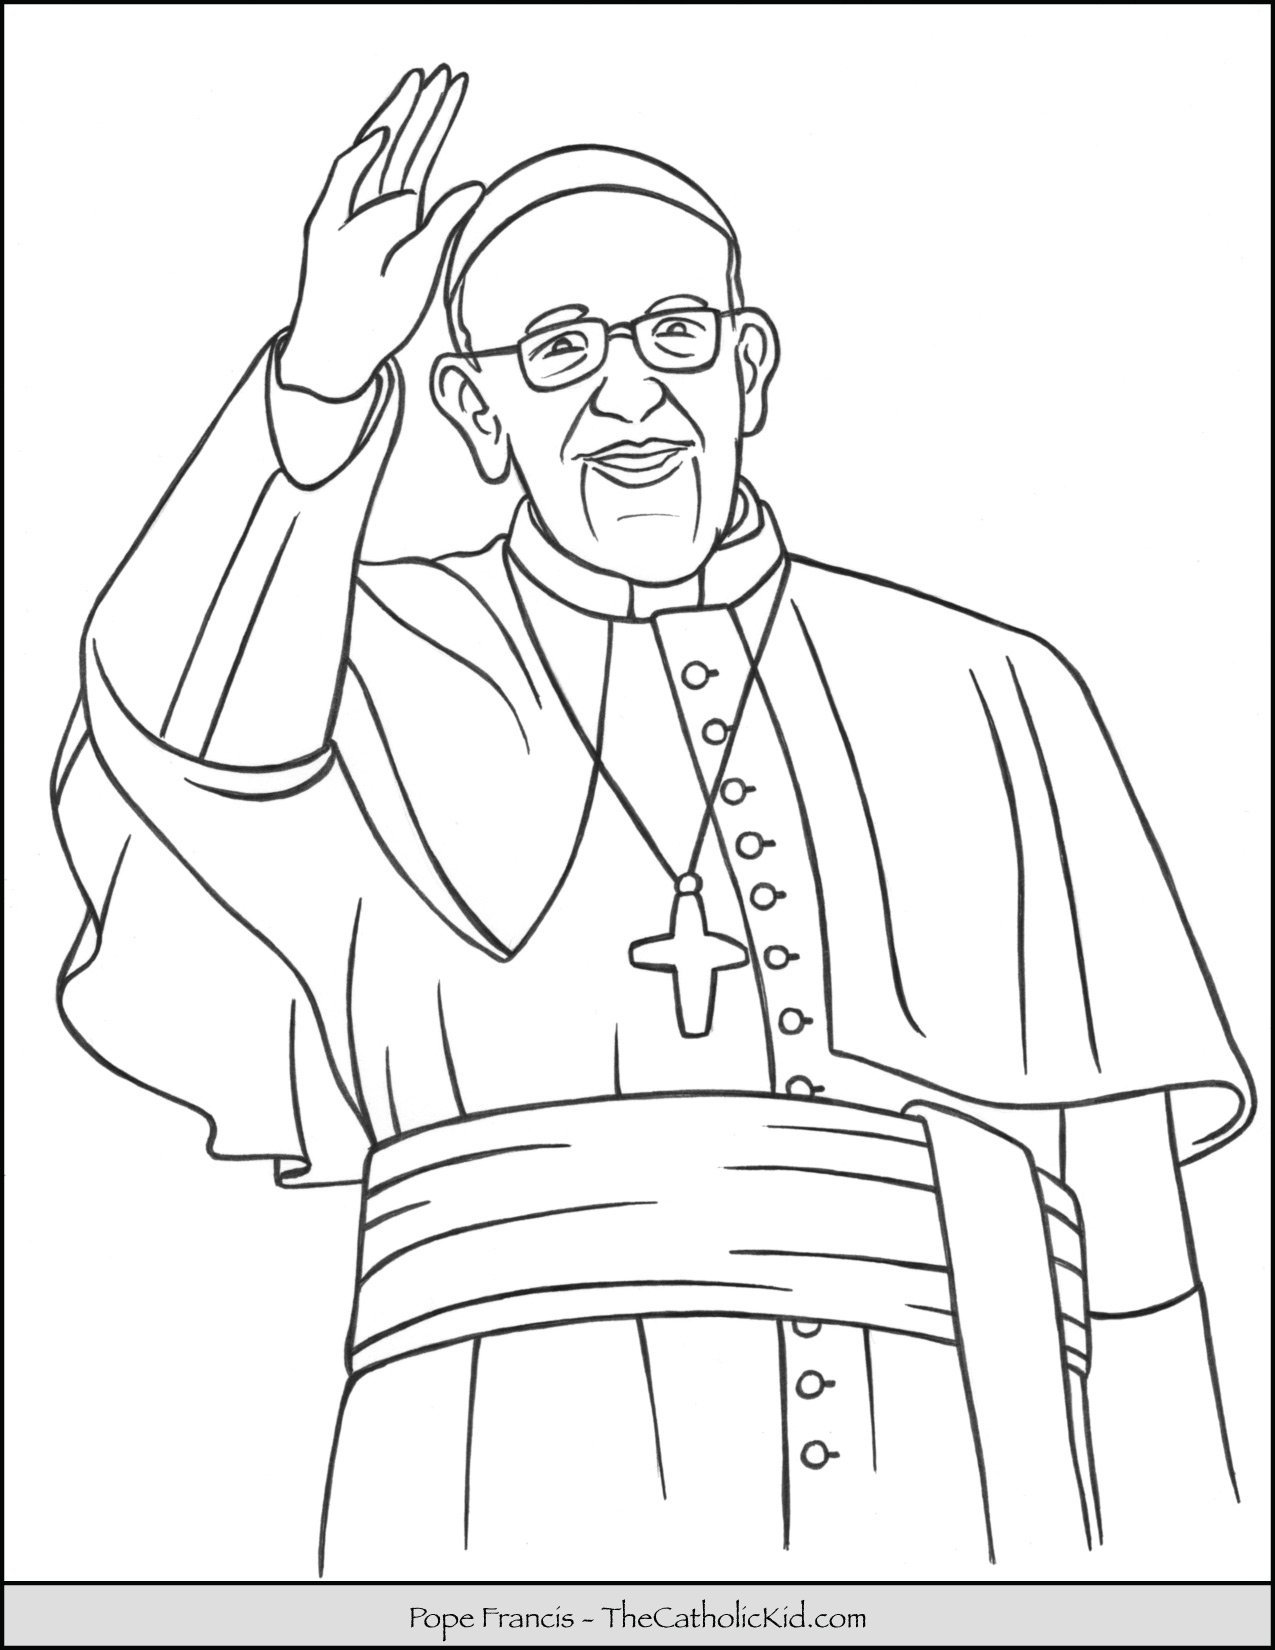 Pope Francis Coloring Page